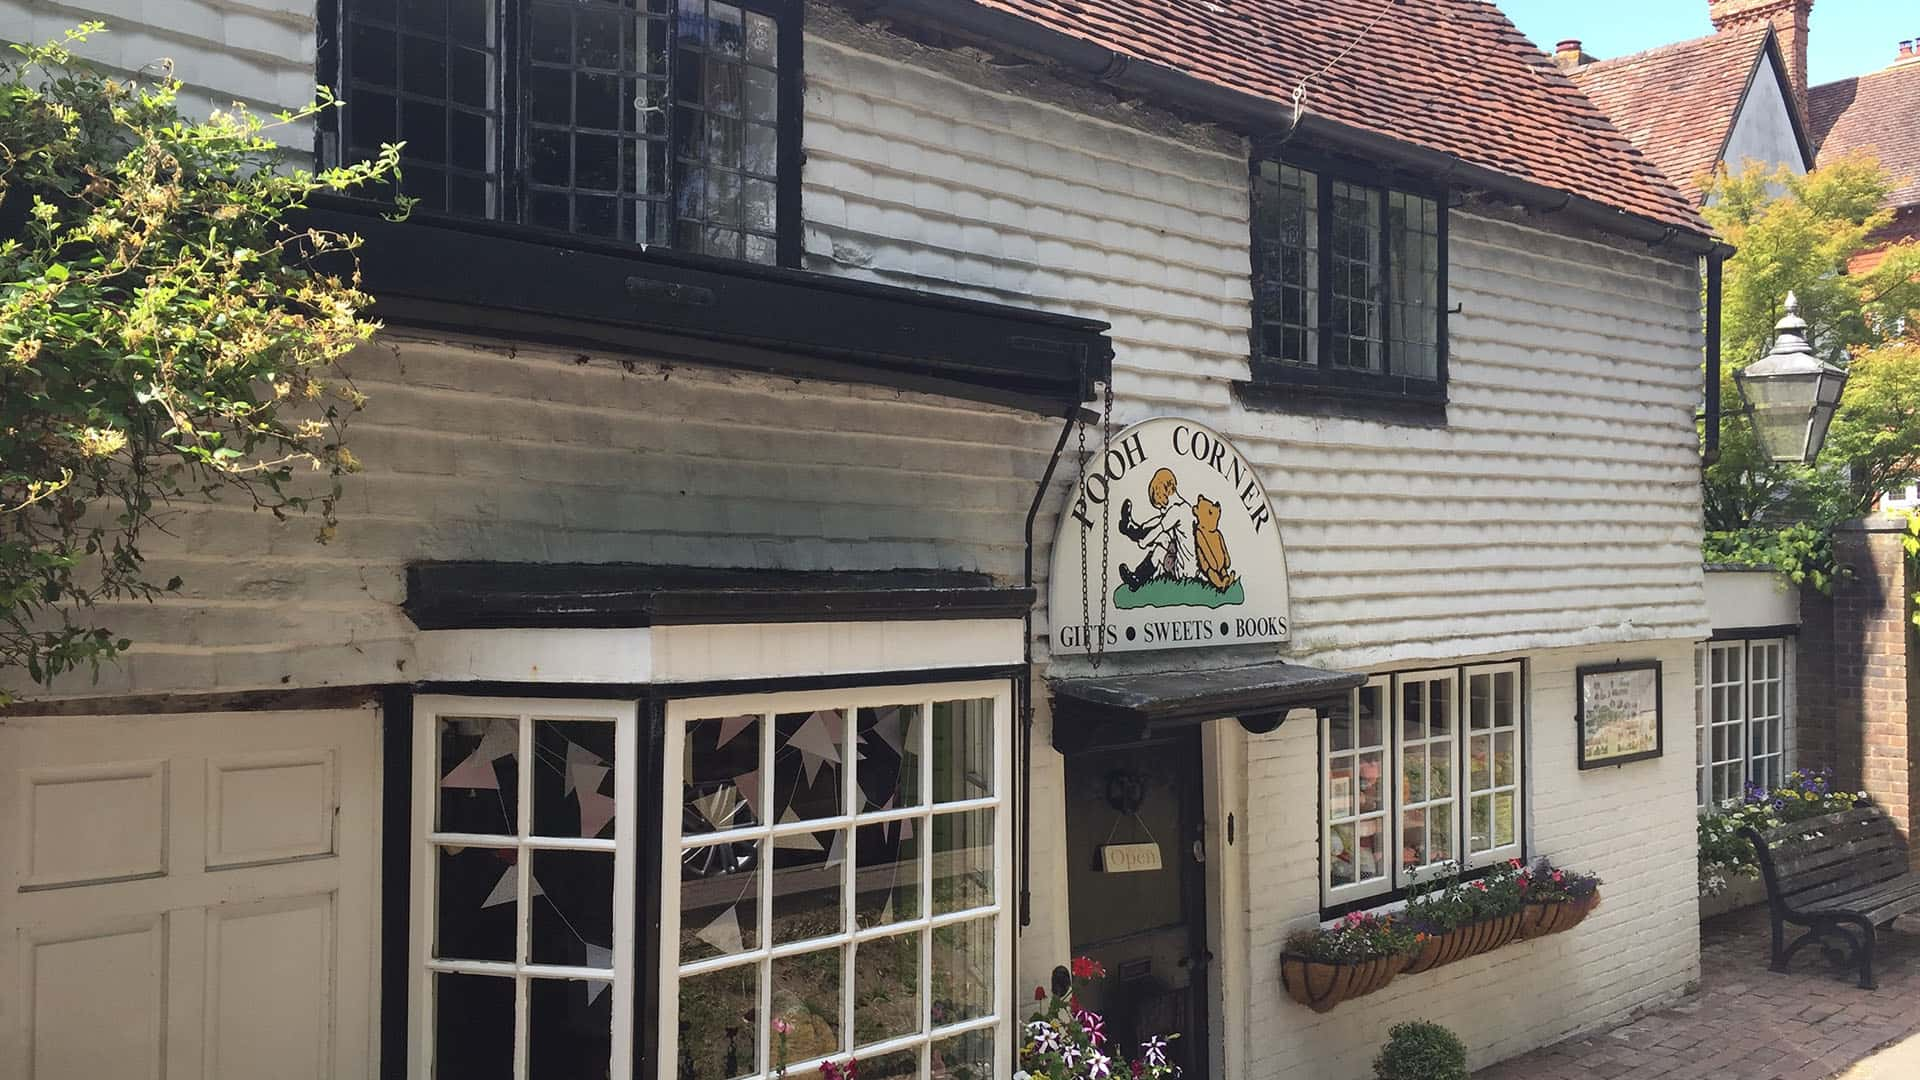 Private Day Tour to Pooh Corner and Pooh Sticks Bridge from London